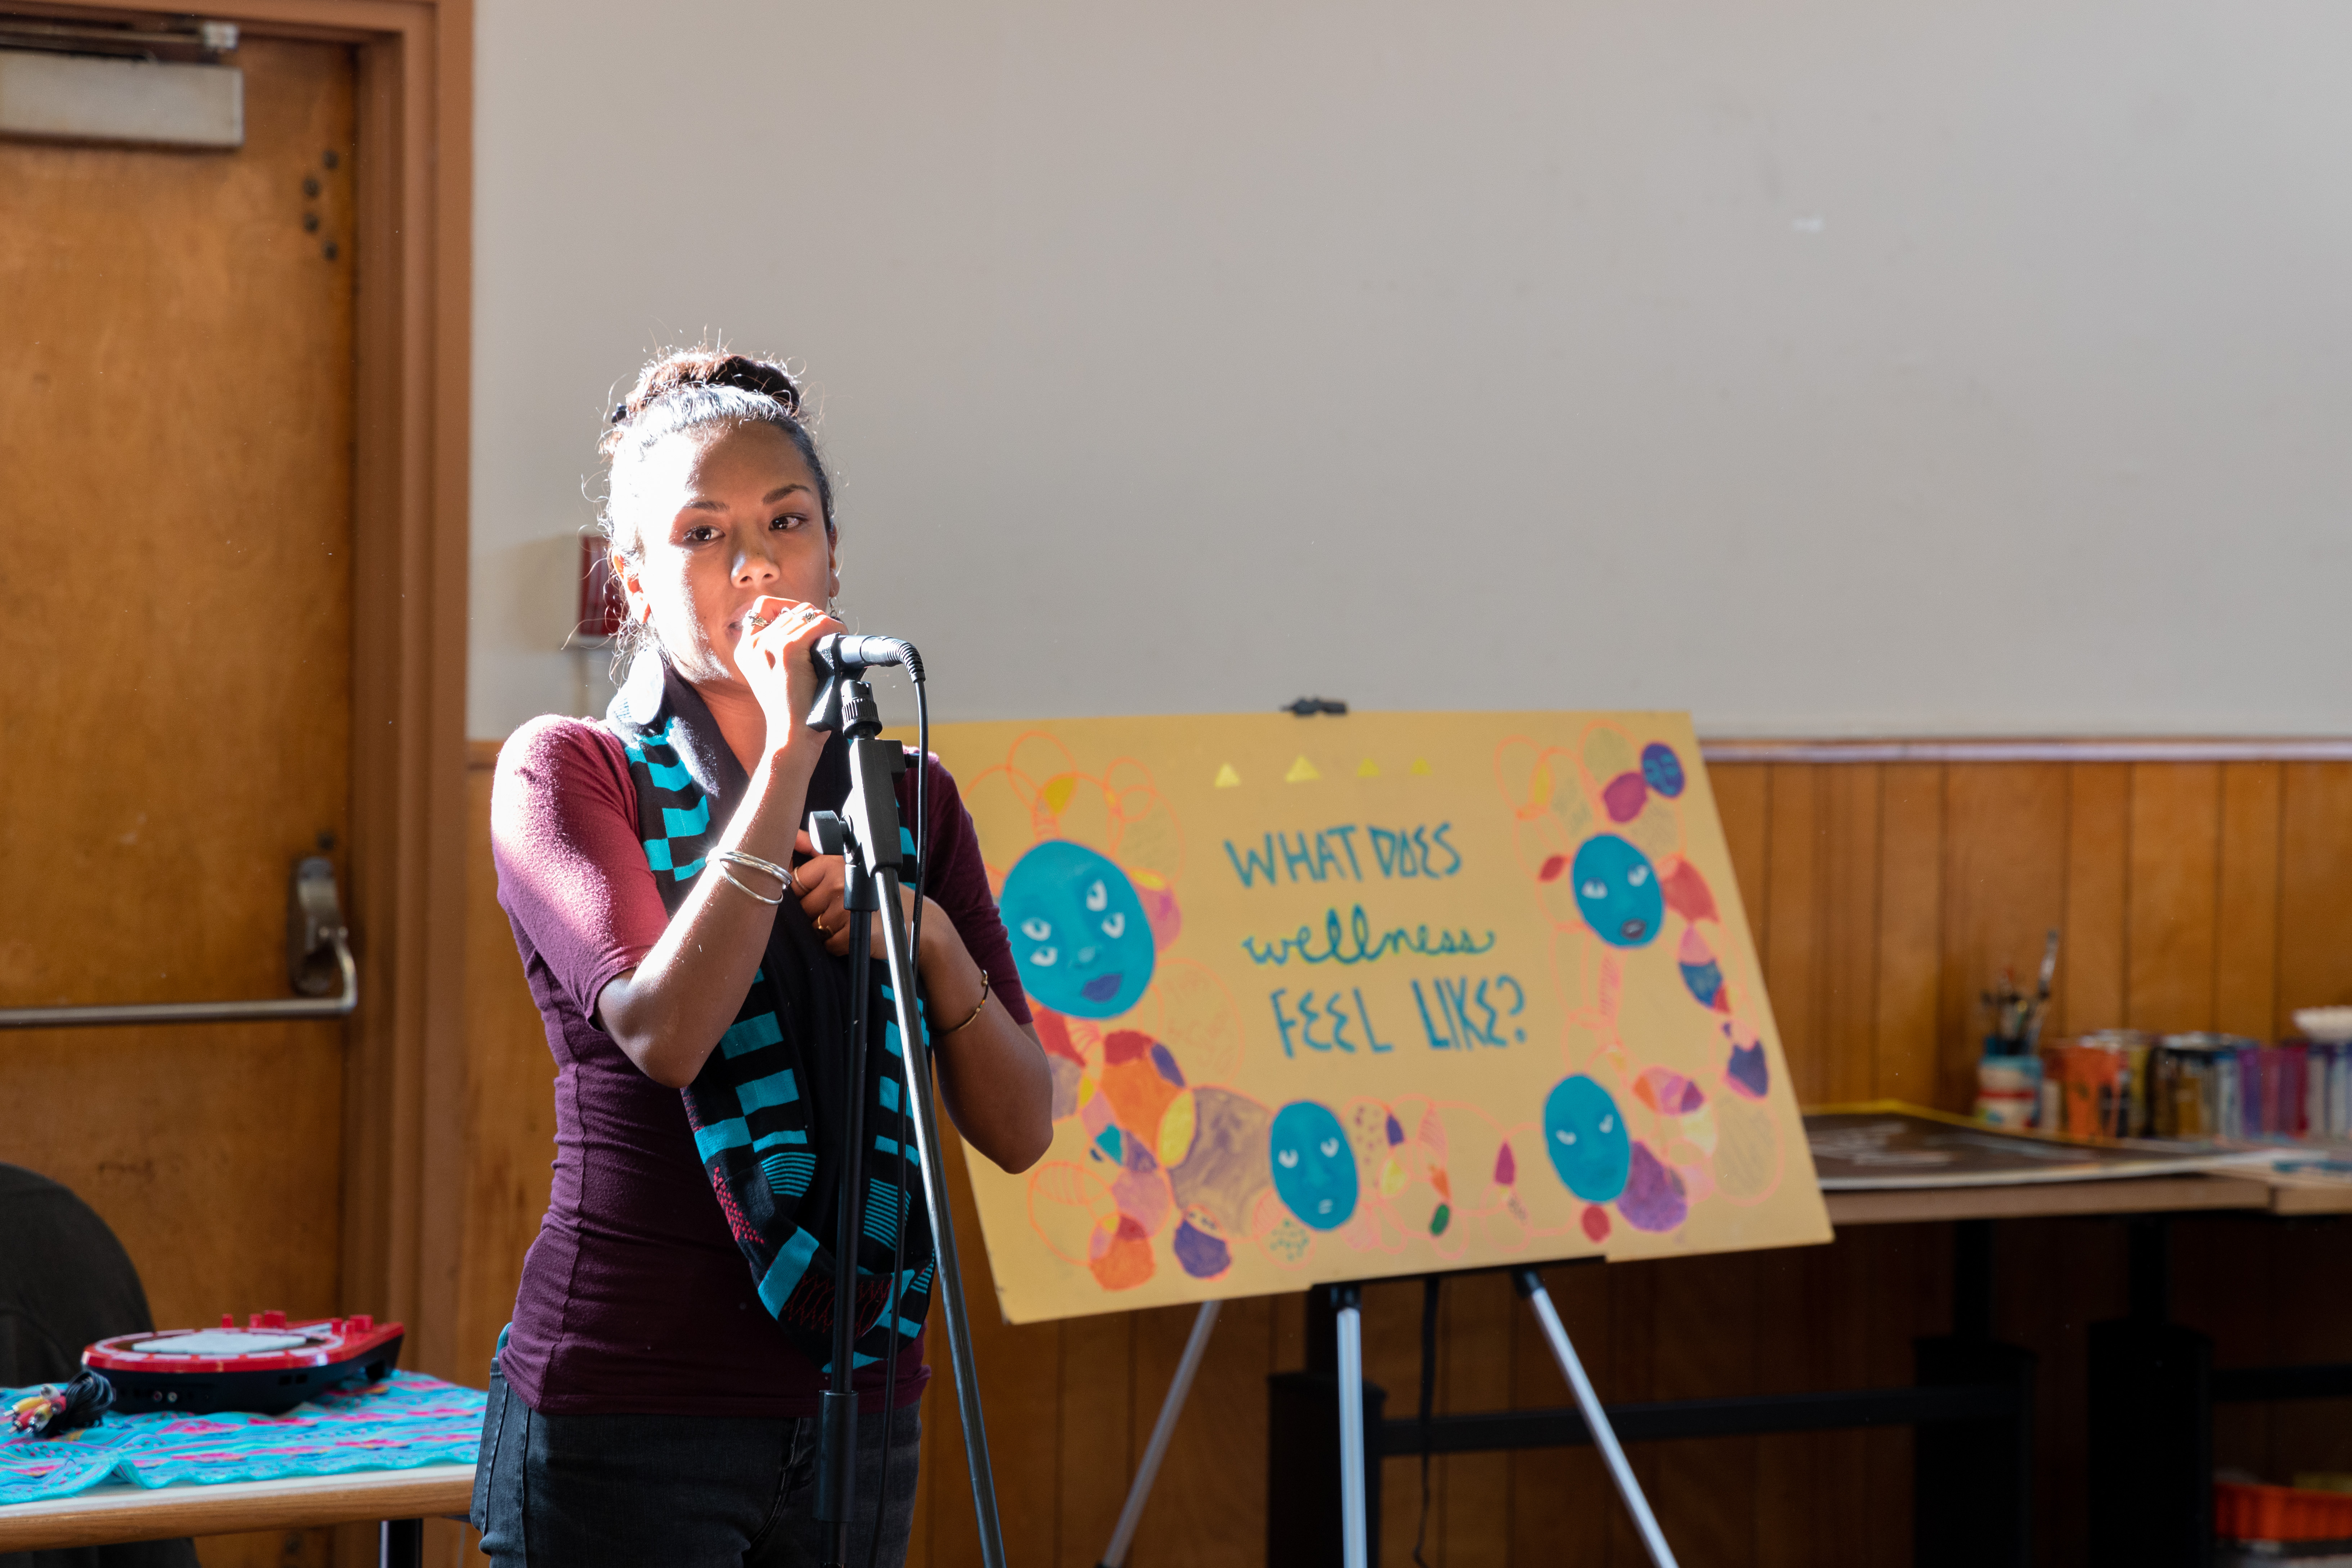 """A young indigenous woman with her hair in a bun speaks in a microphone at a well-lit room. A sign behind her says """"What Does Wellness Feel Like?"""""""